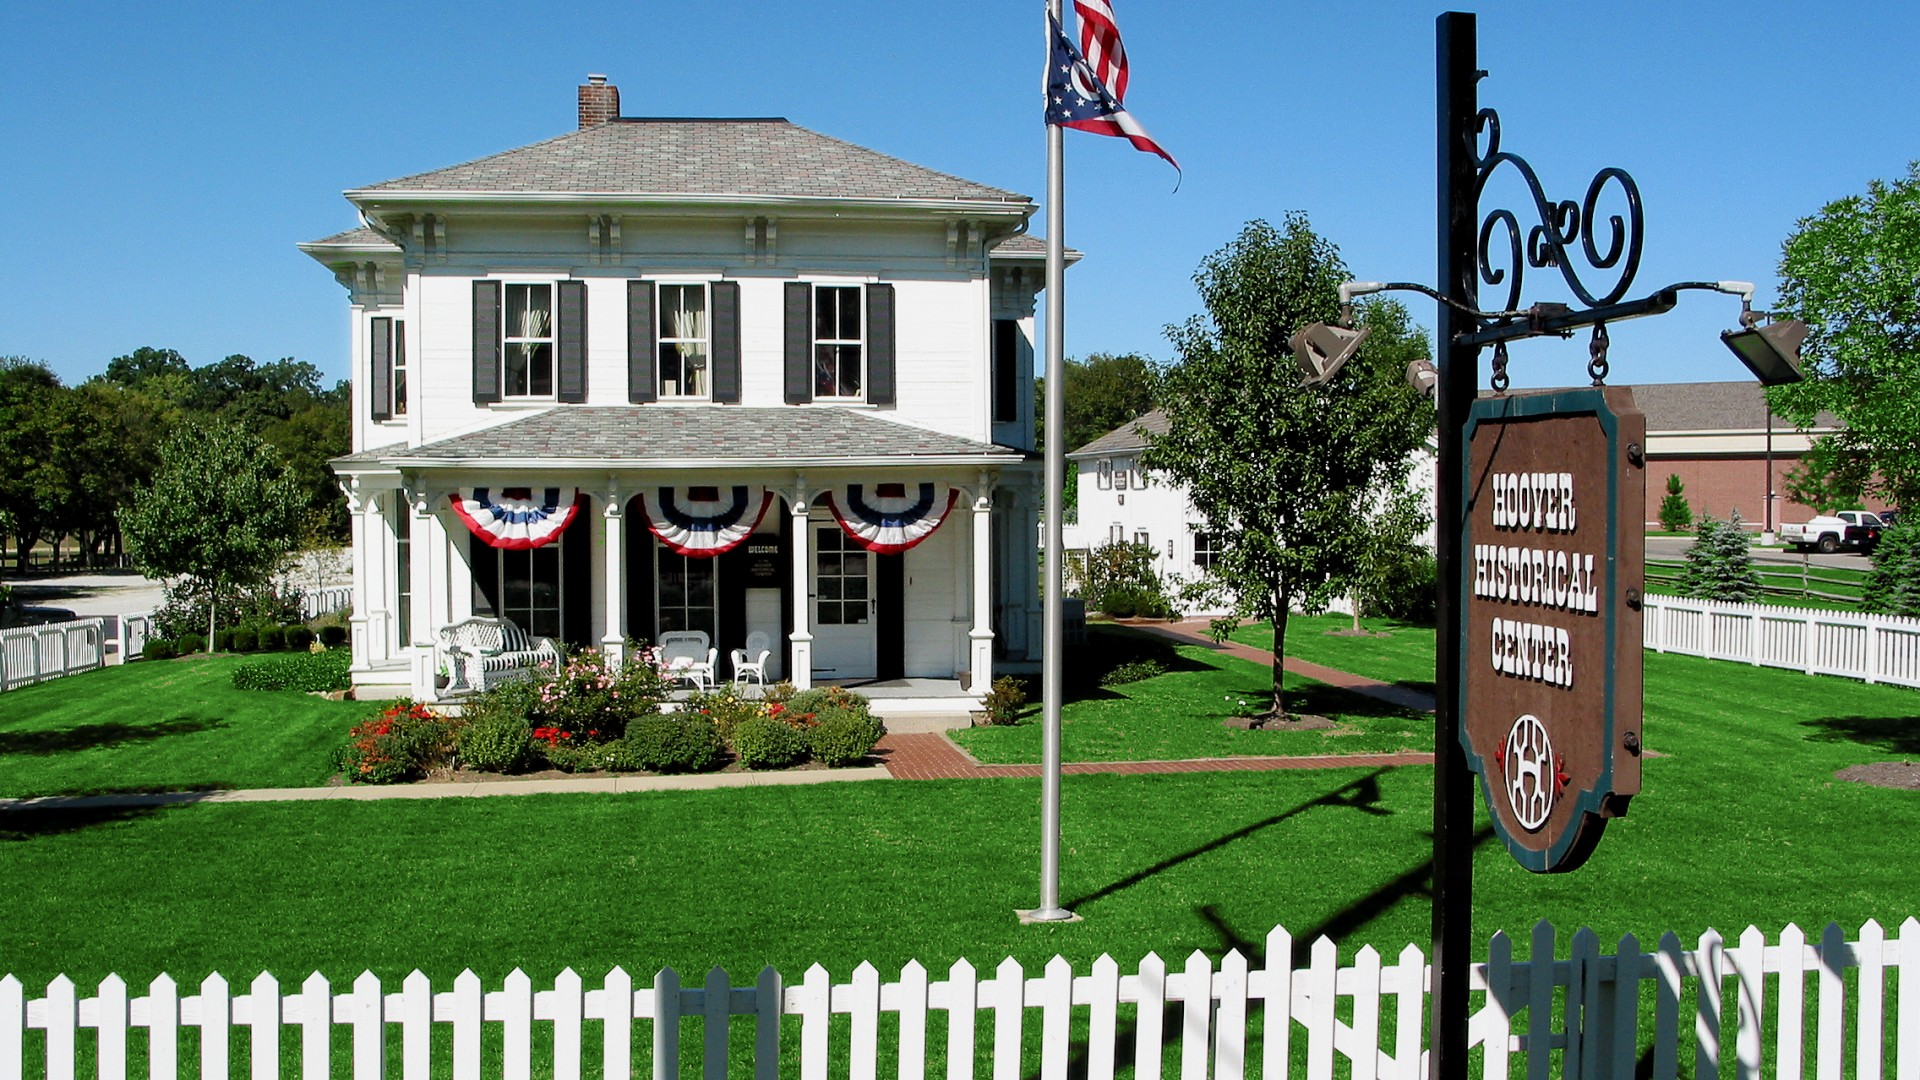 Hoover Historical Center in North Canton